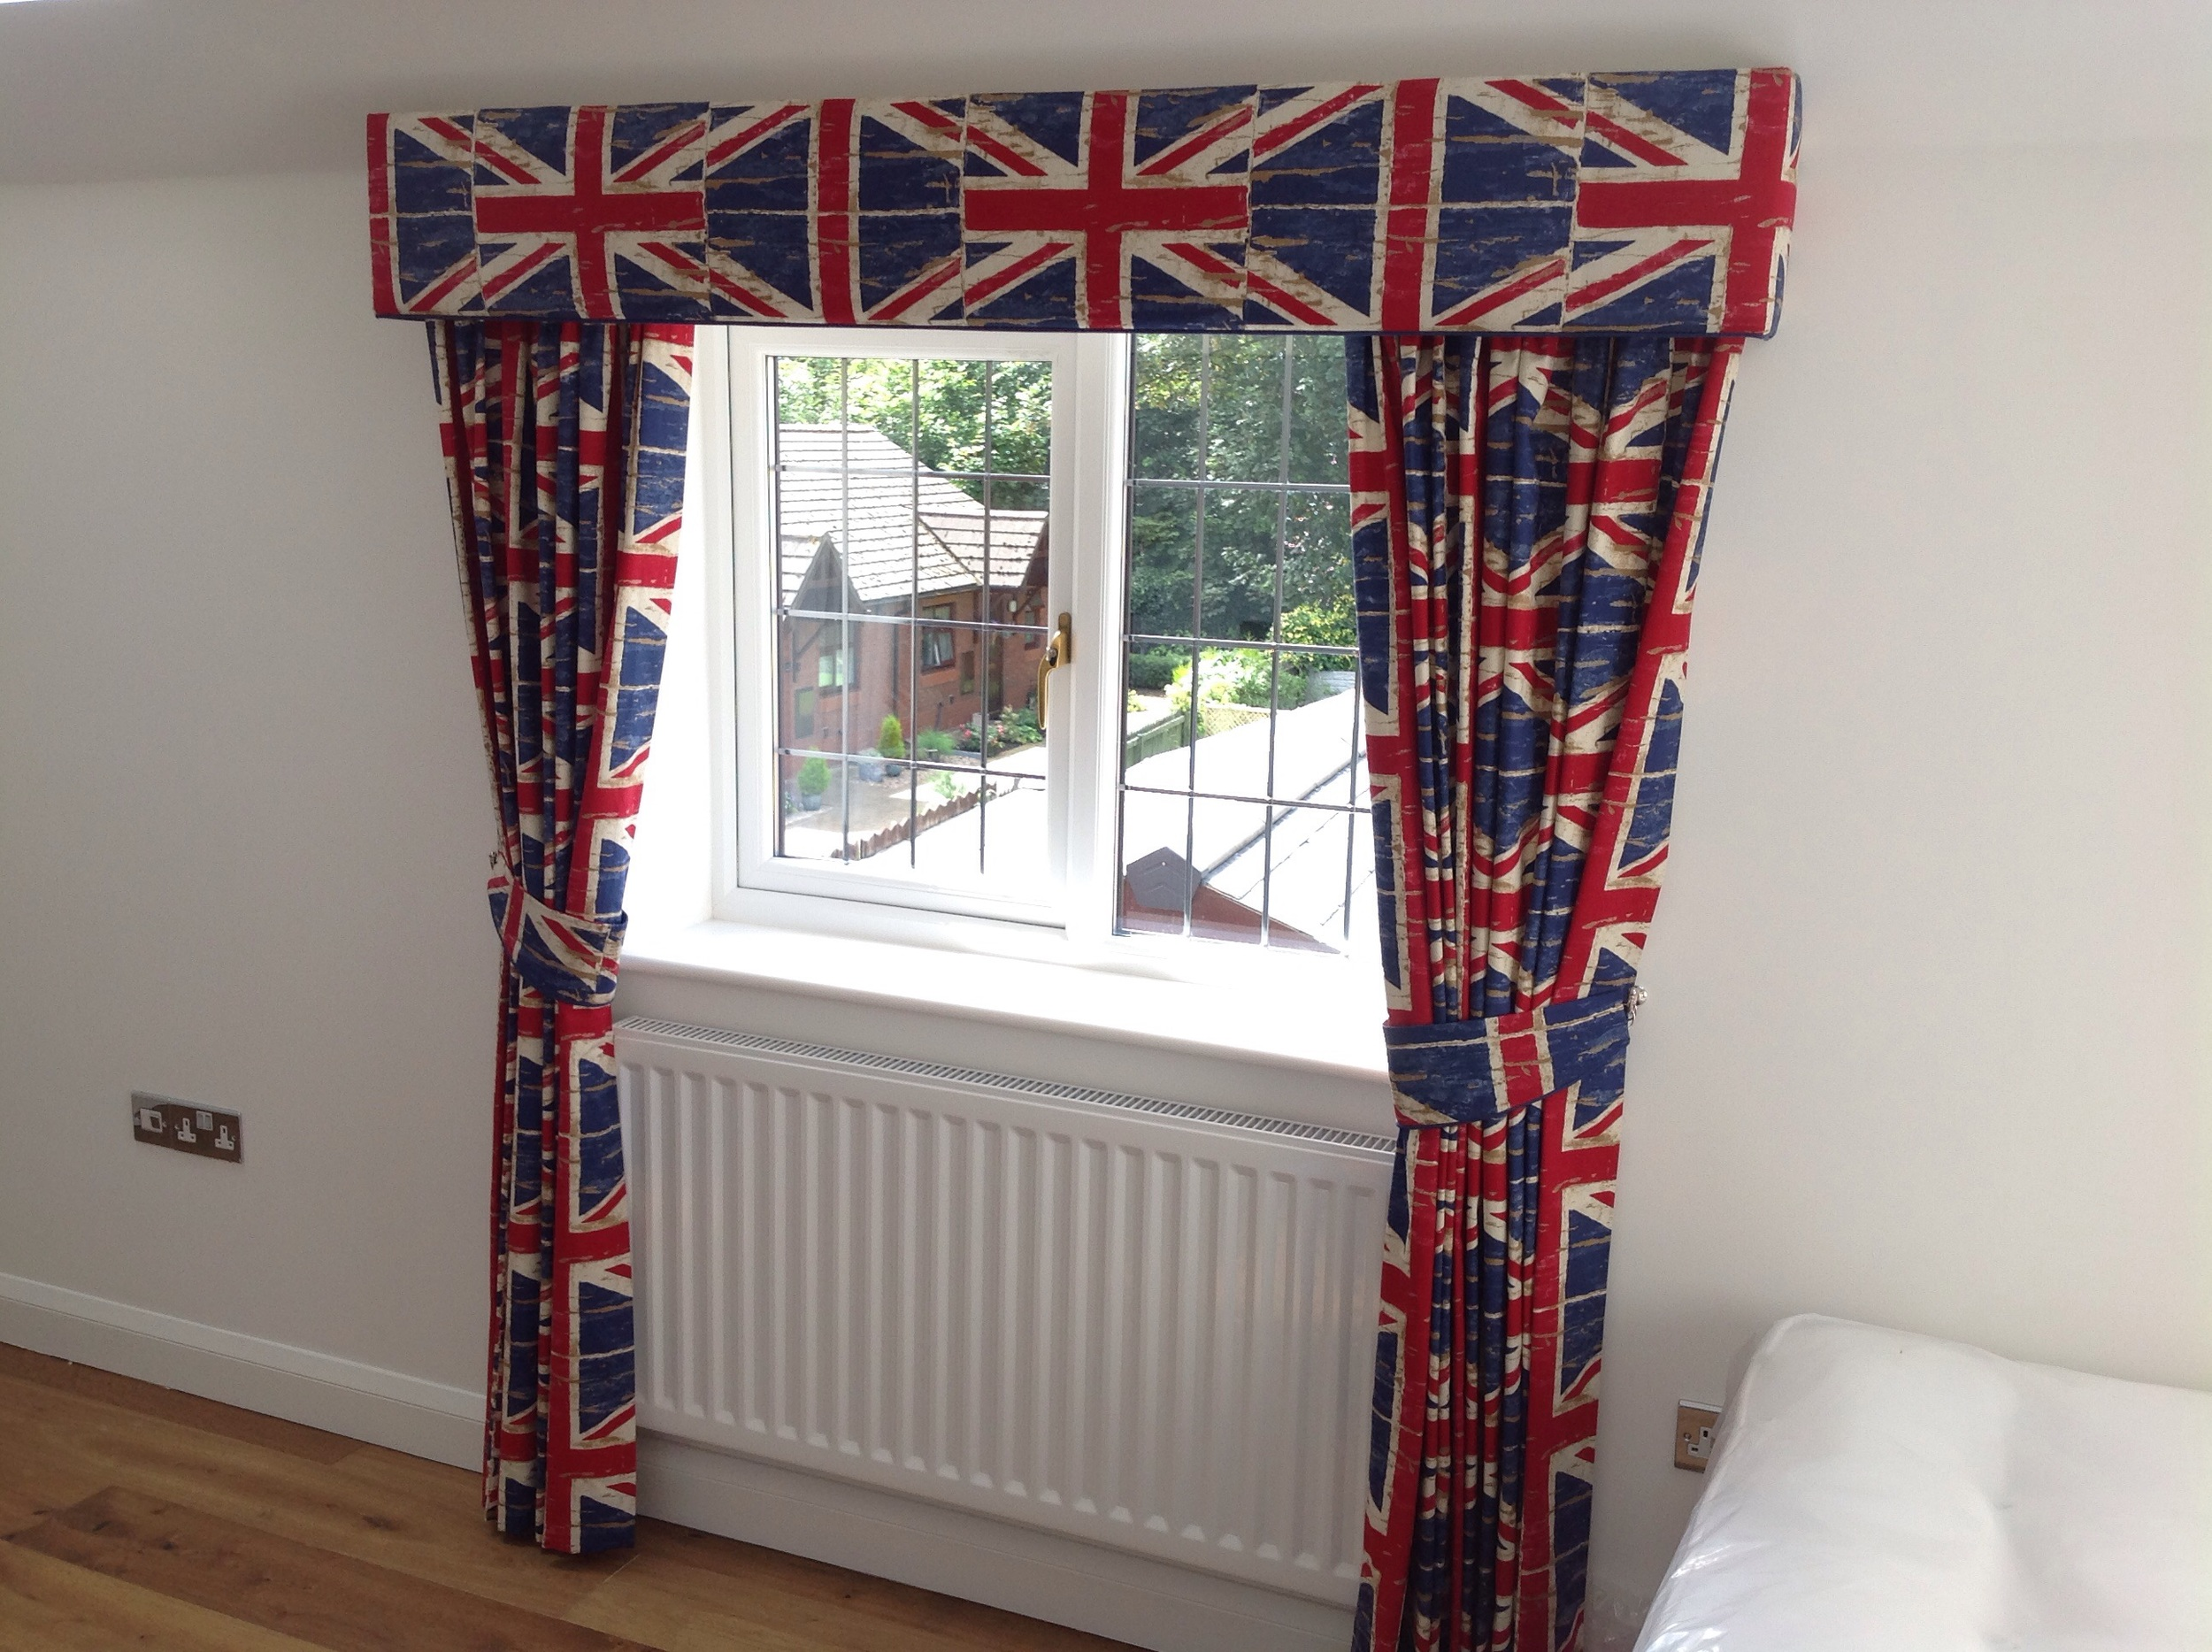 Childs bedroom Essex board Pelmet, curtains & matching tie backs